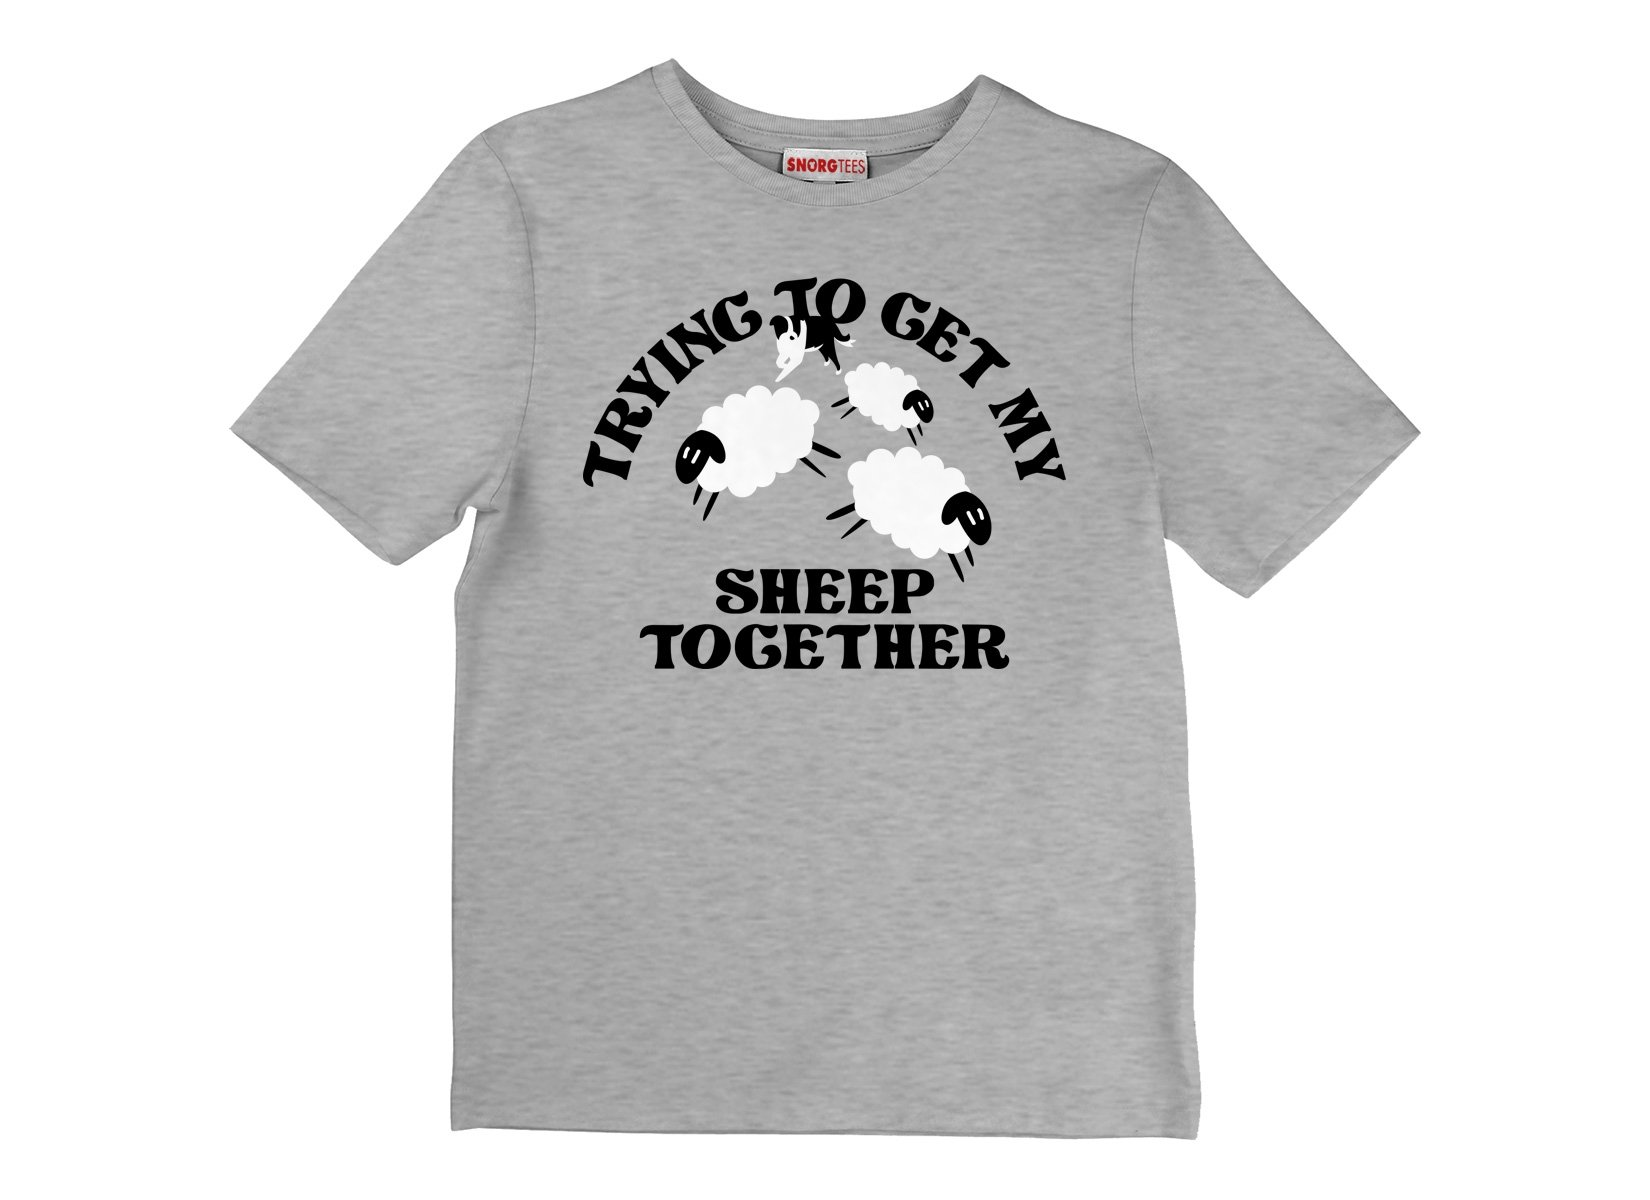 Trying To Get My Sheep Together on Kids T-Shirt